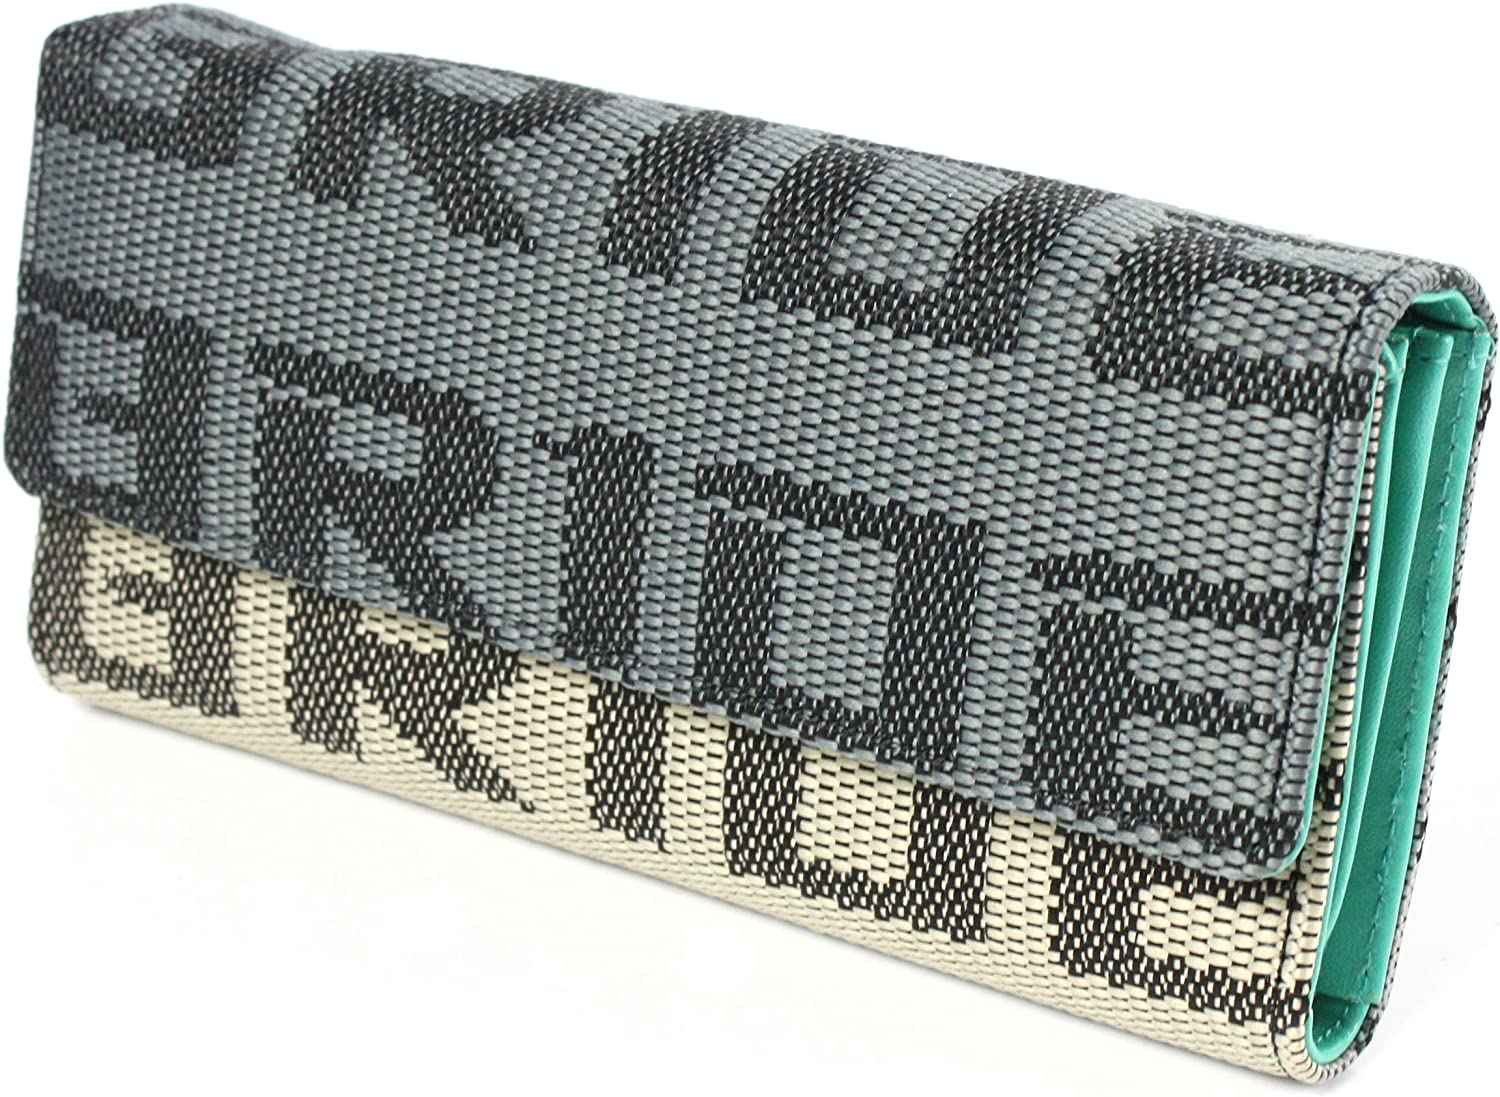 Key Bride Racing Women/'s Ladies Wallet Clutch Trifold Fabric Leather Teal